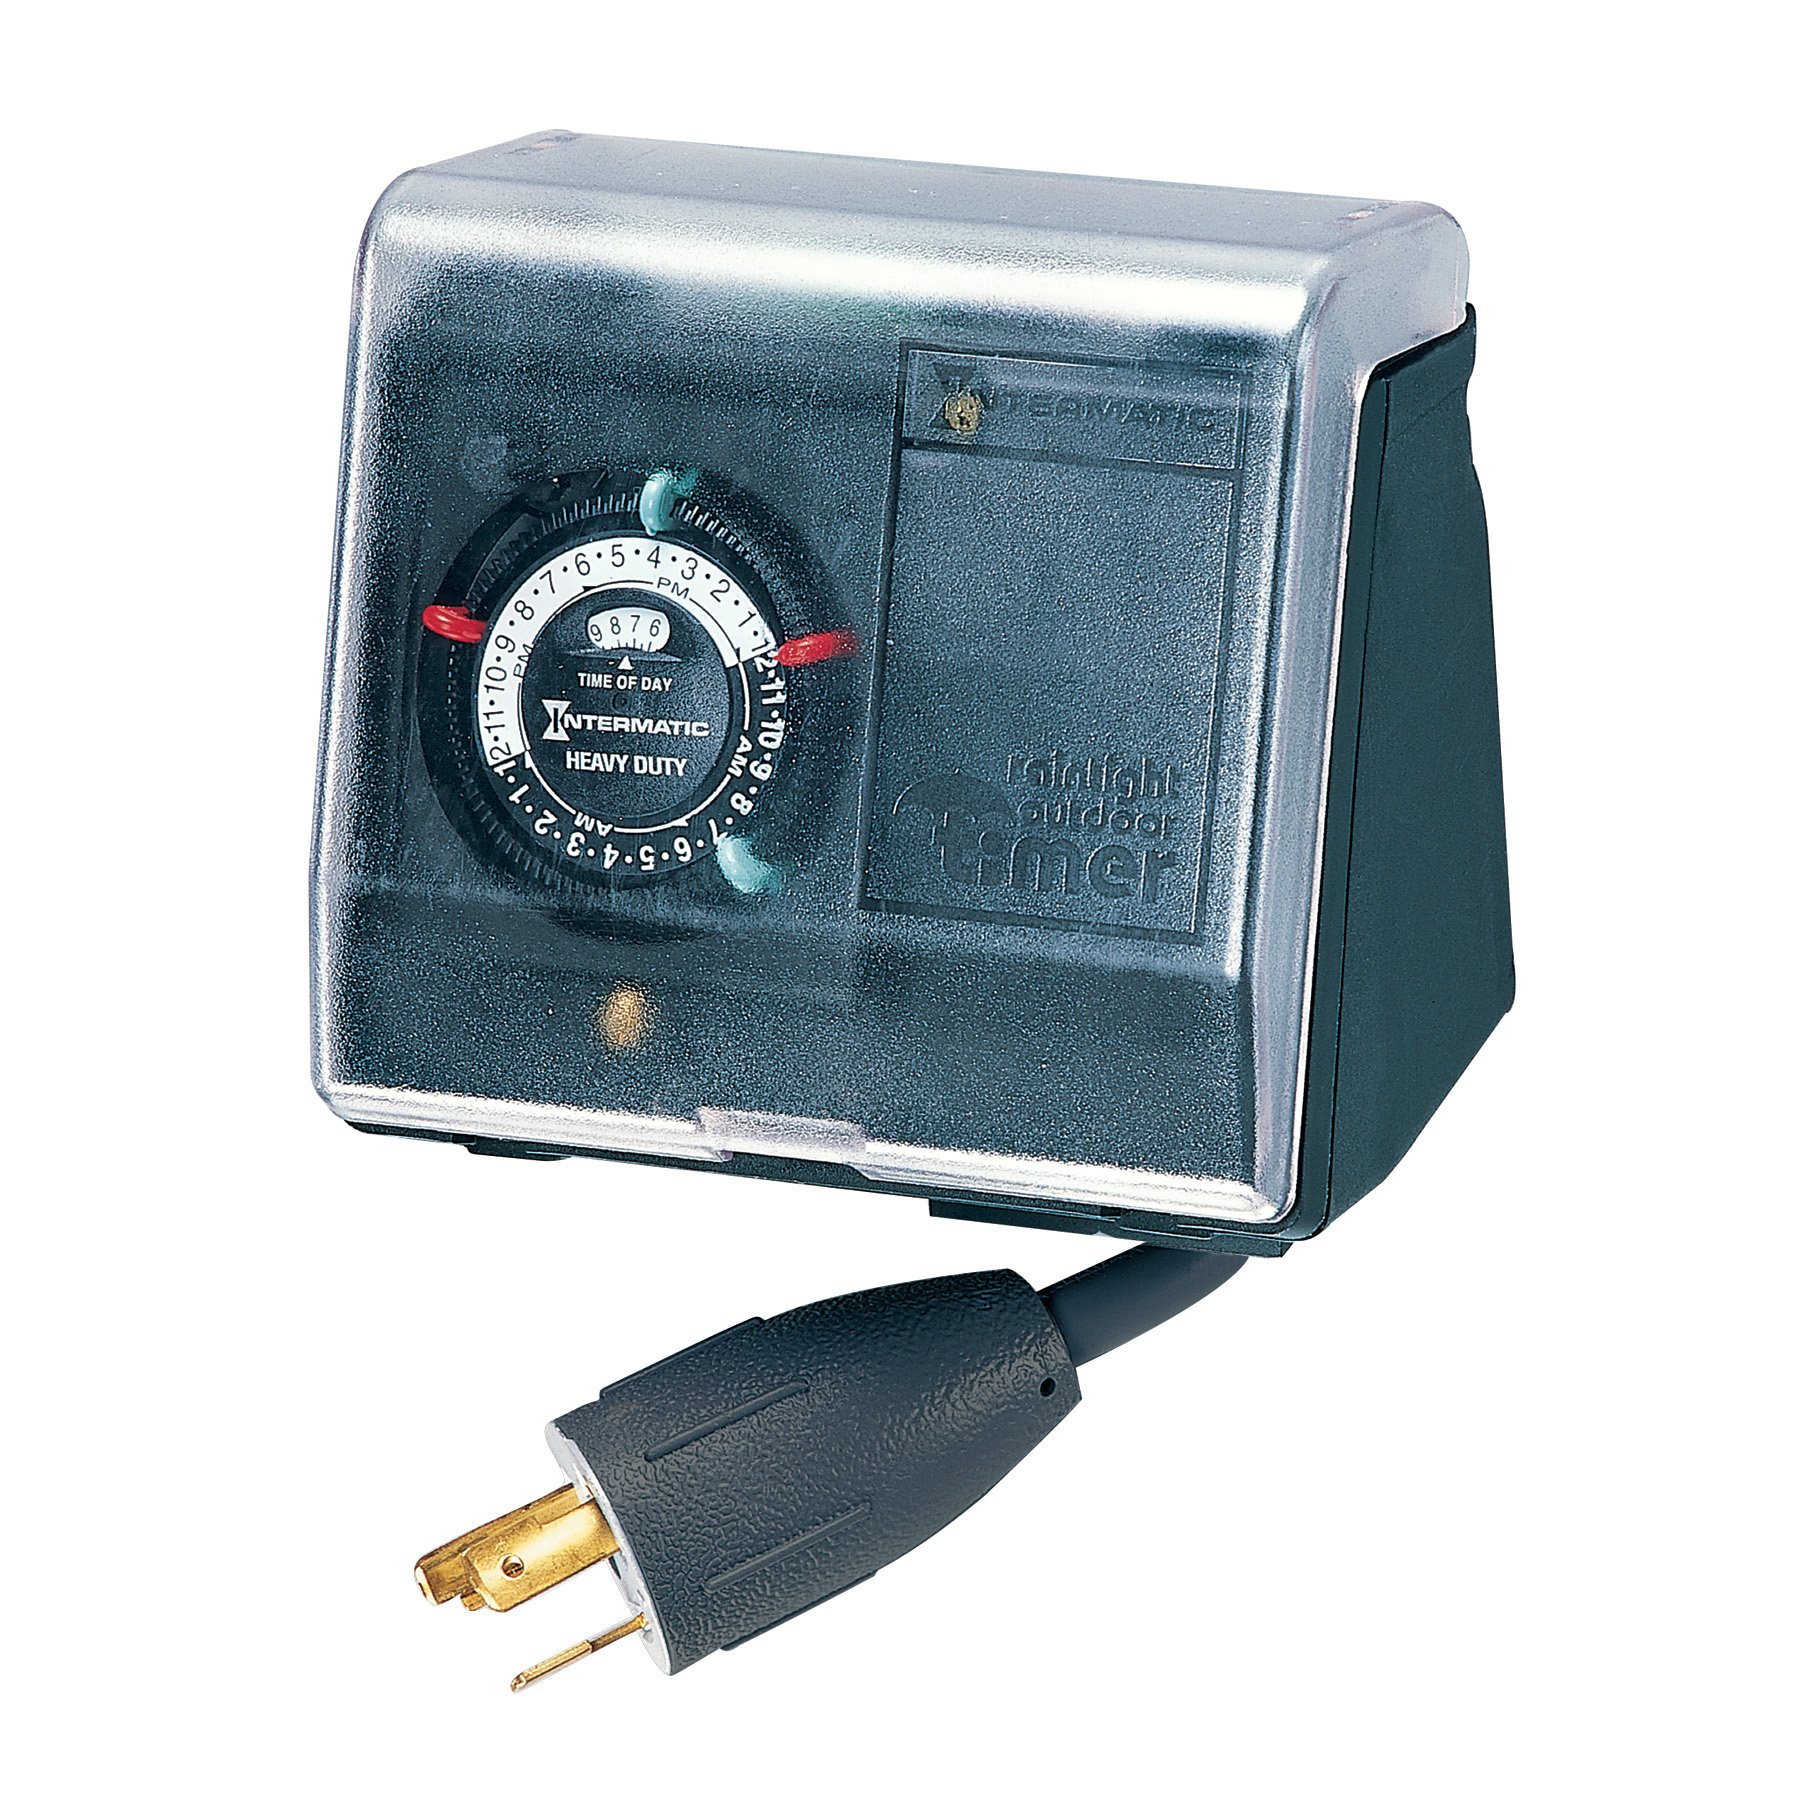 Intermatic P1131 Heavy Duty Above Ground Pool Pump Timer with Twist Lock Plug and Receptacle